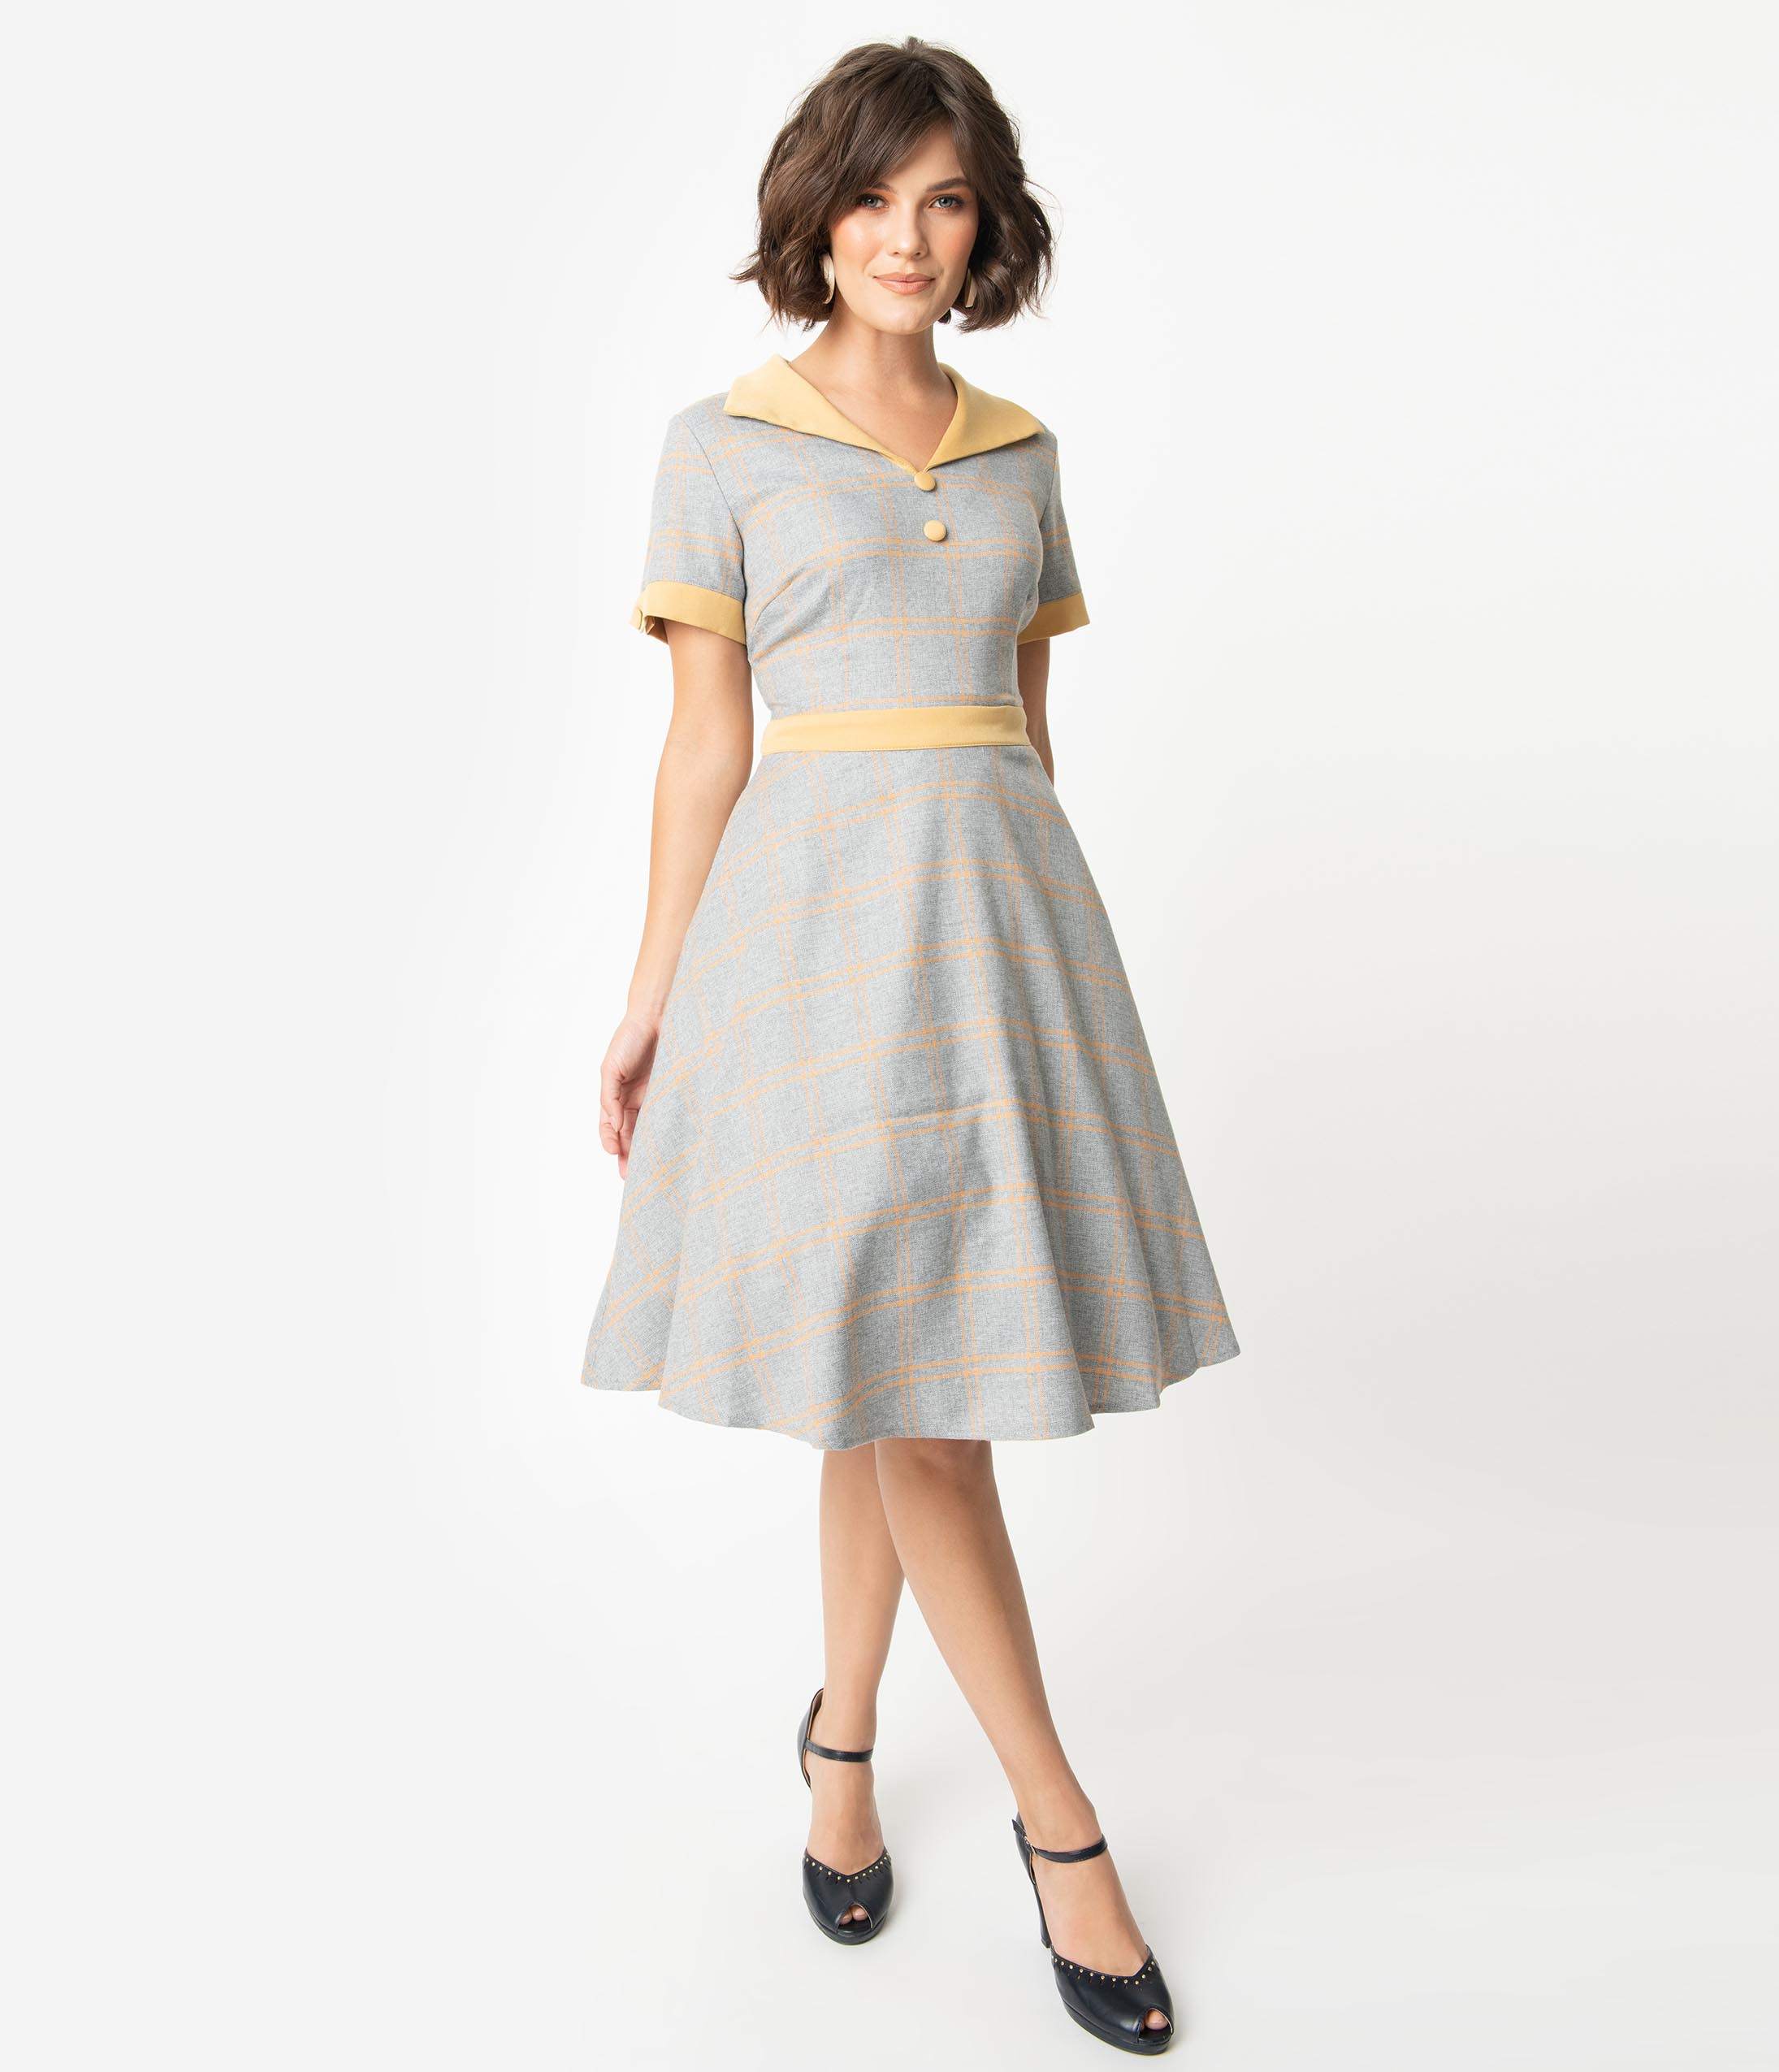 Fifties Dresses : 1950s Style Swing to Wiggle Dresses 1950S Style Grey  Yellow Check Woven Short Sleeve Swing Dress $78.00 AT vintagedancer.com